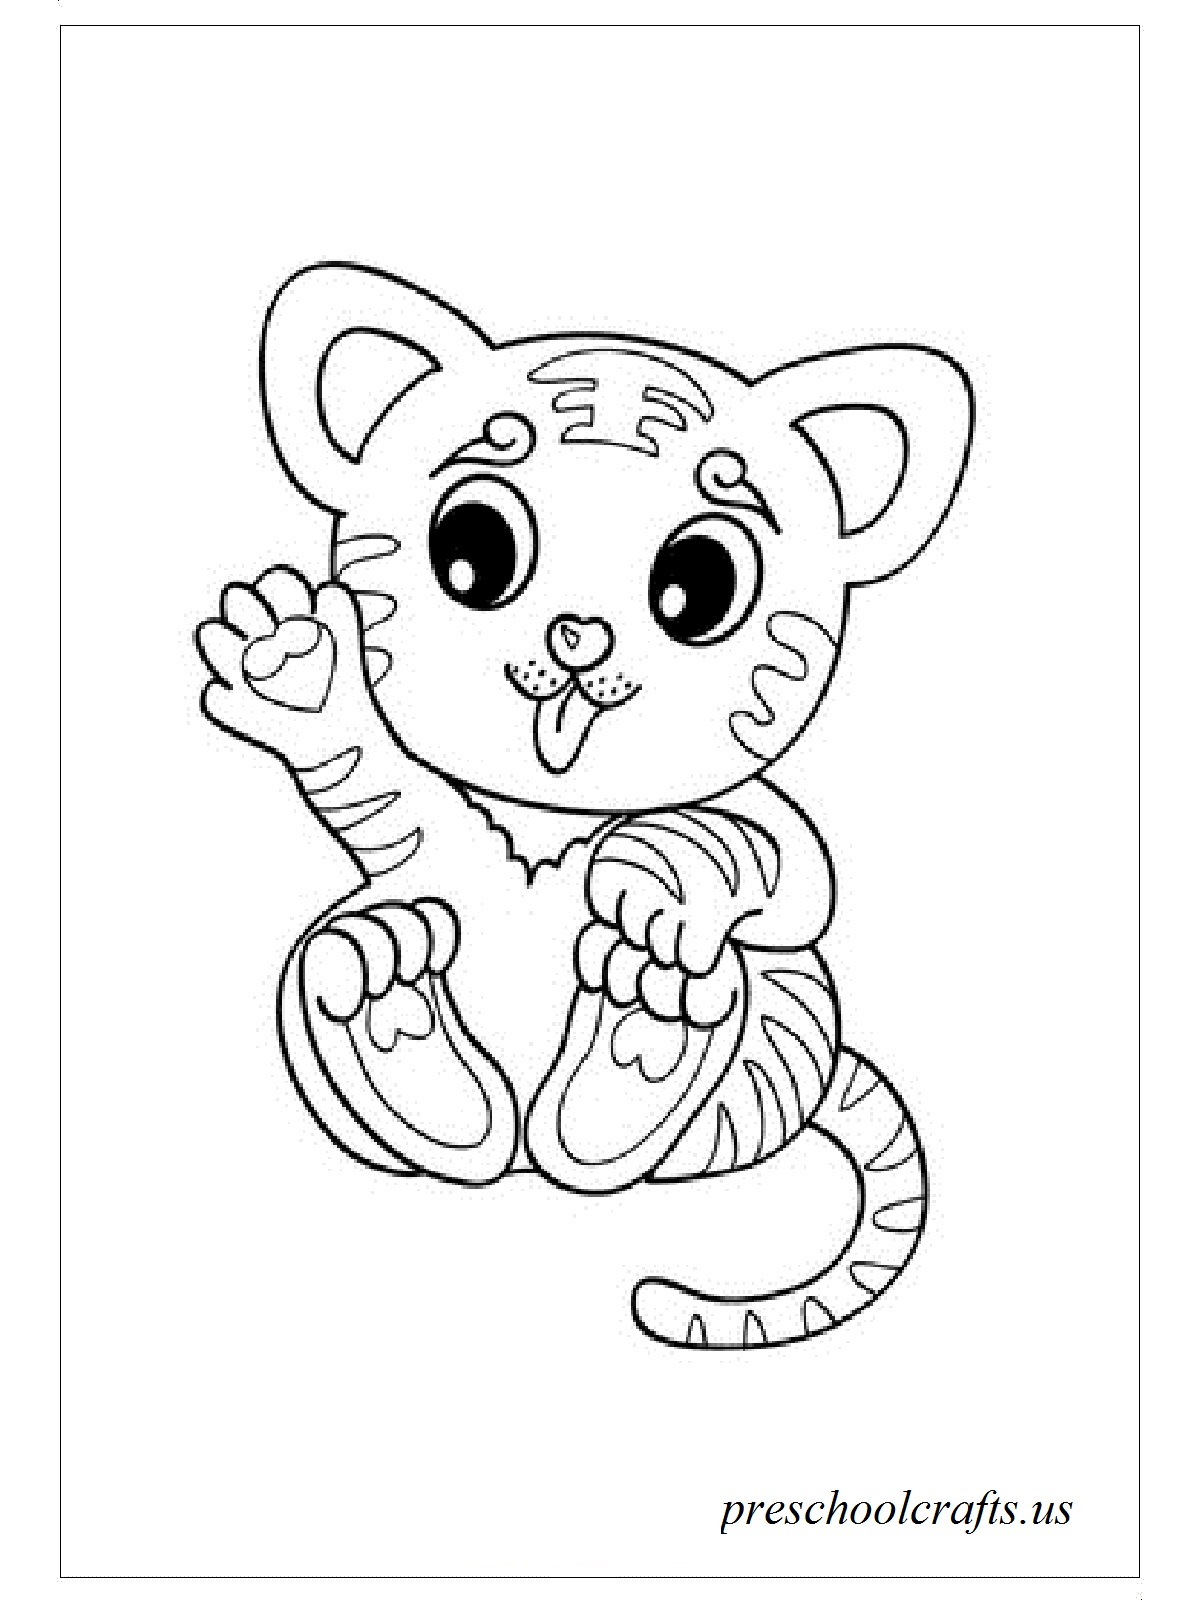 coloring page of tiger tigers free to color for children tigers kids coloring pages of tiger page coloring